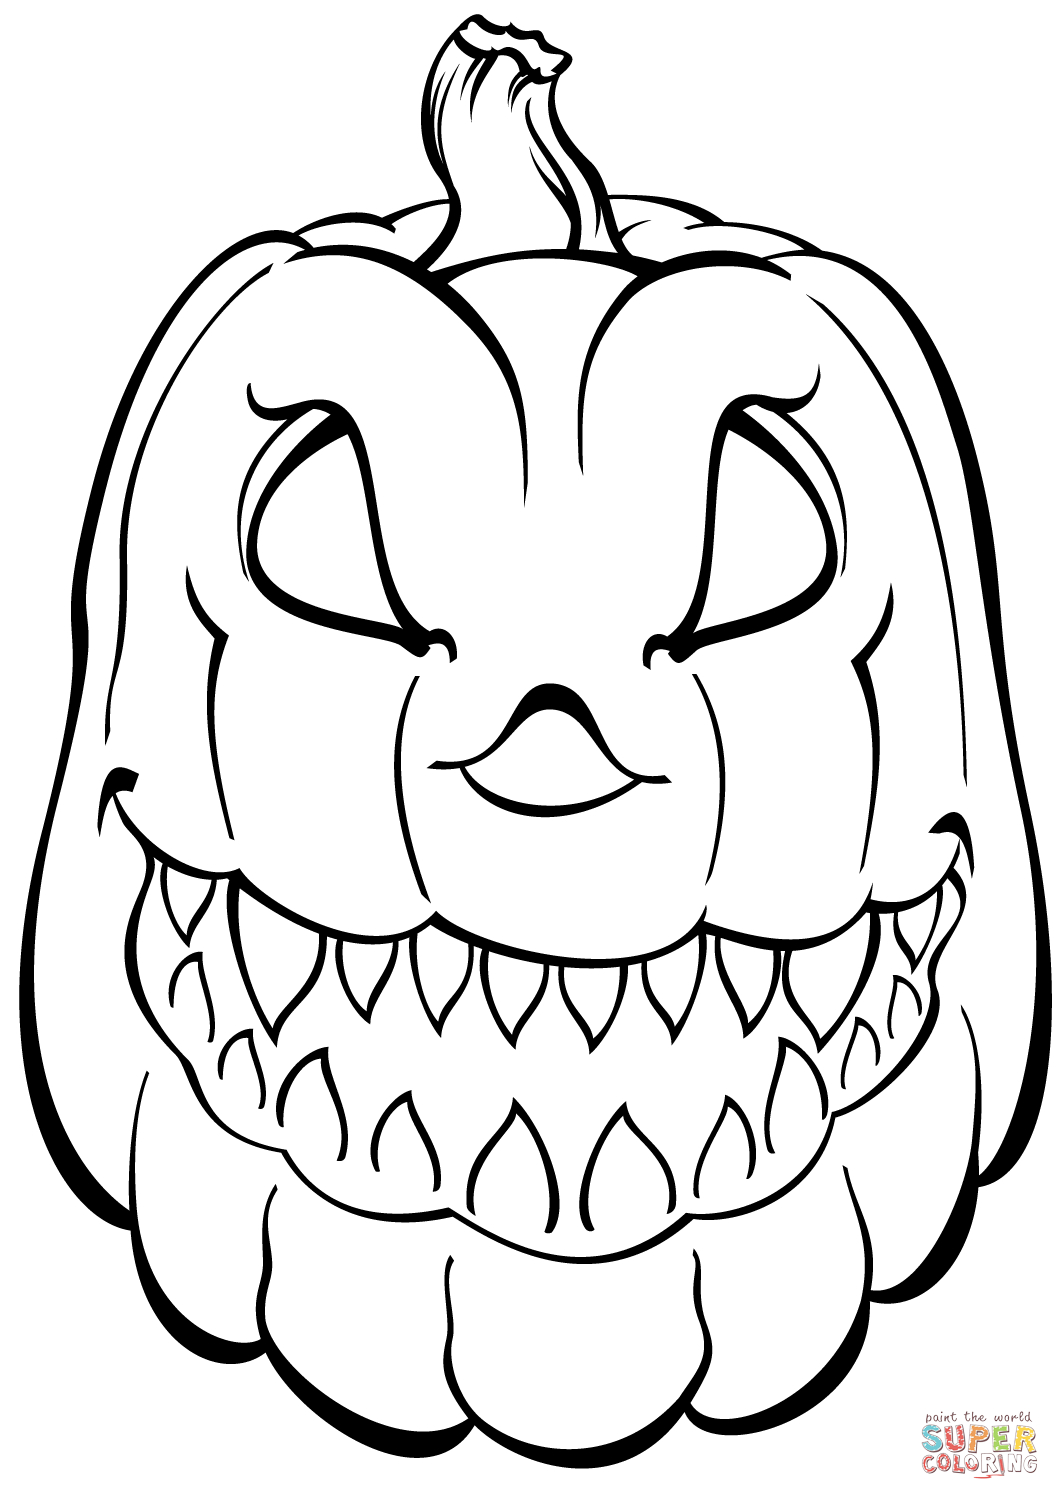 free coloring pages of pumpkins free printable pumpkin coloring pages for kids cool2bkids of free pumpkins pages coloring